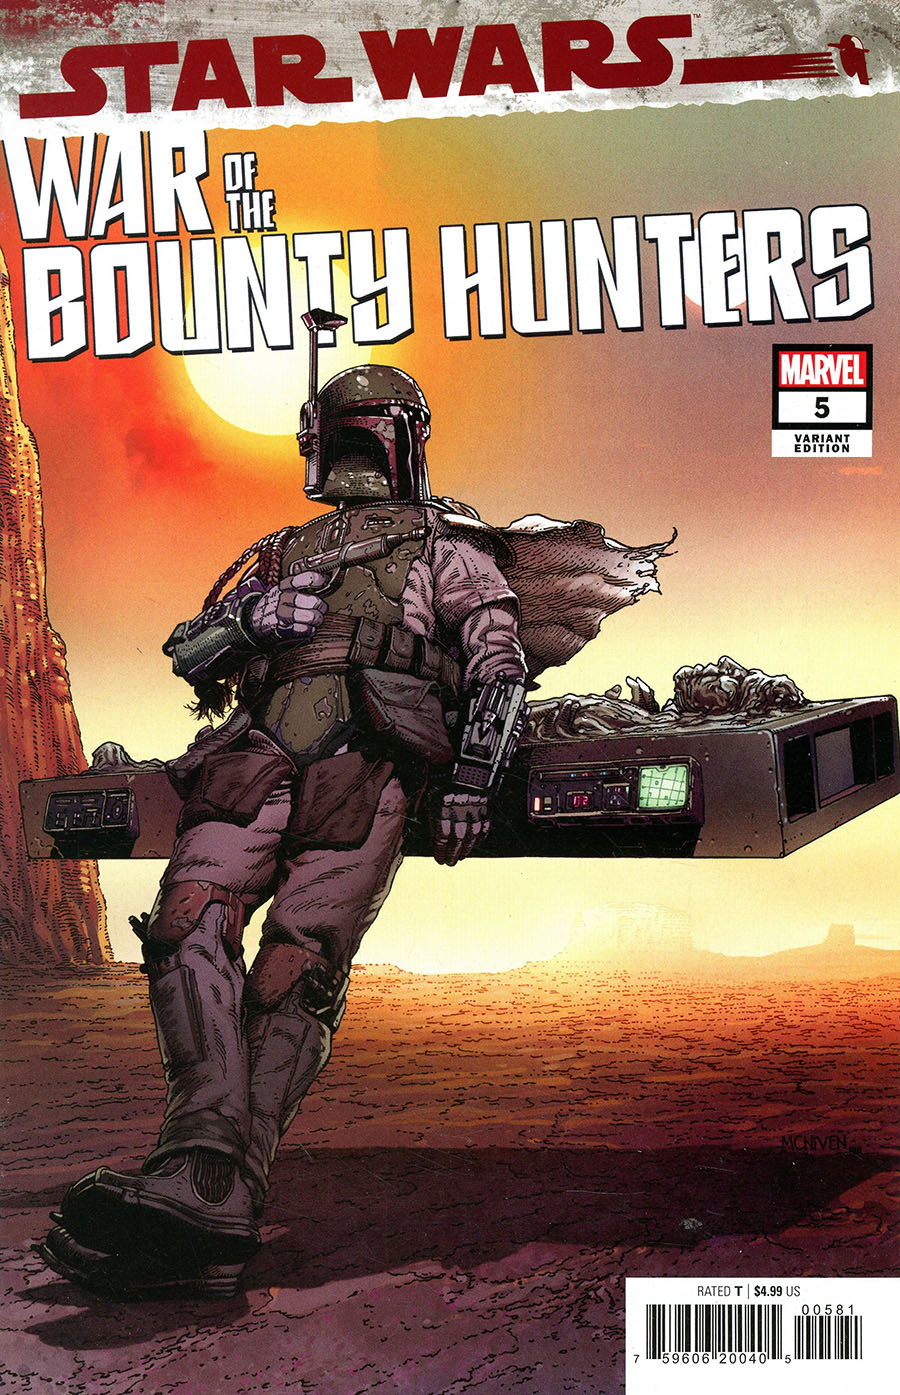 """War of the Bounty Hunters #5 (Steve McNiven """"Boba Always Gets His Bounty"""" Variant Cover) (06.10.2021)"""